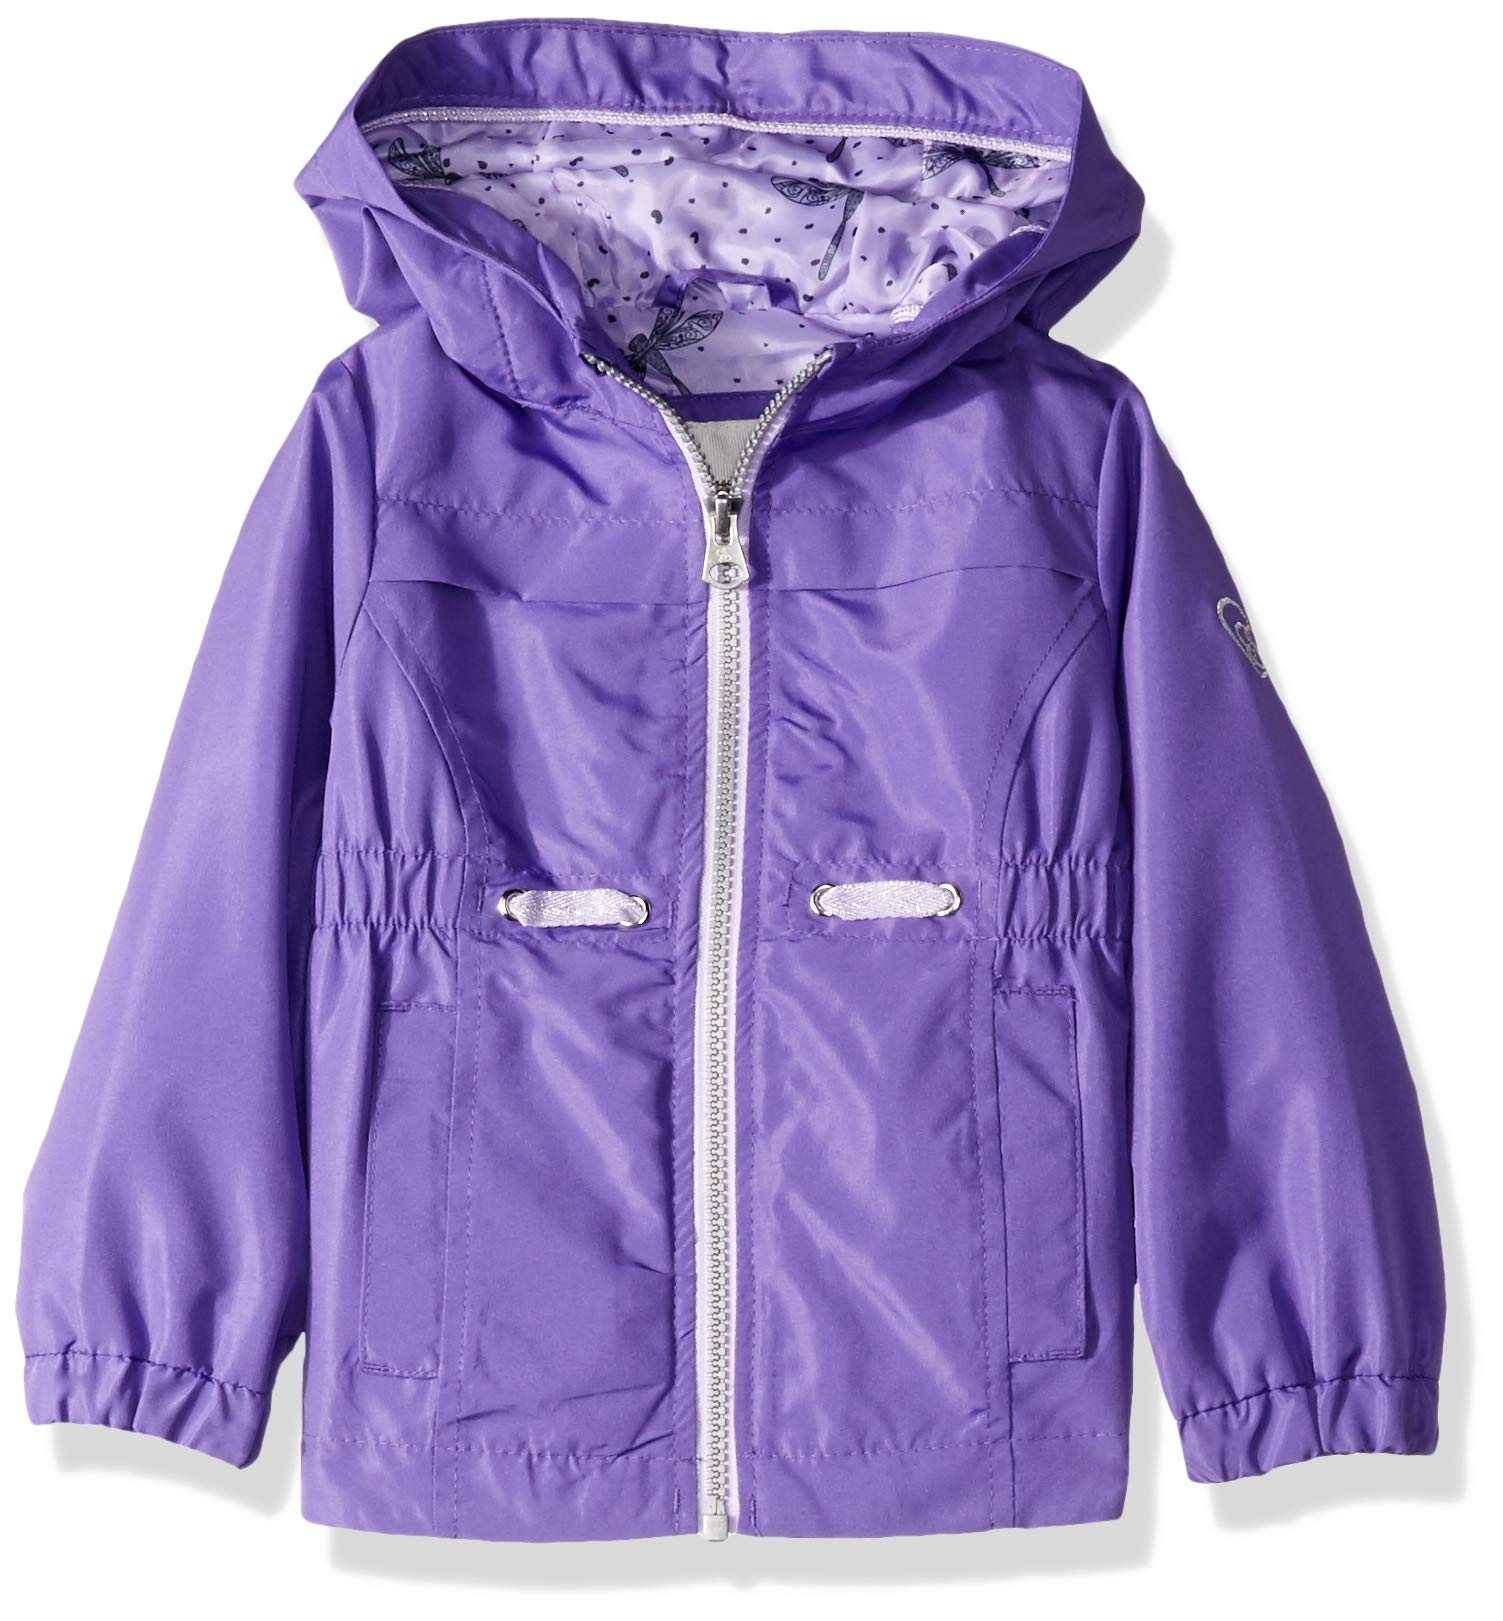 Jessica Simpson Girls' Toddler Lightweight Anorak Jacket with Jersey Lining, Ultra Violet, 2T